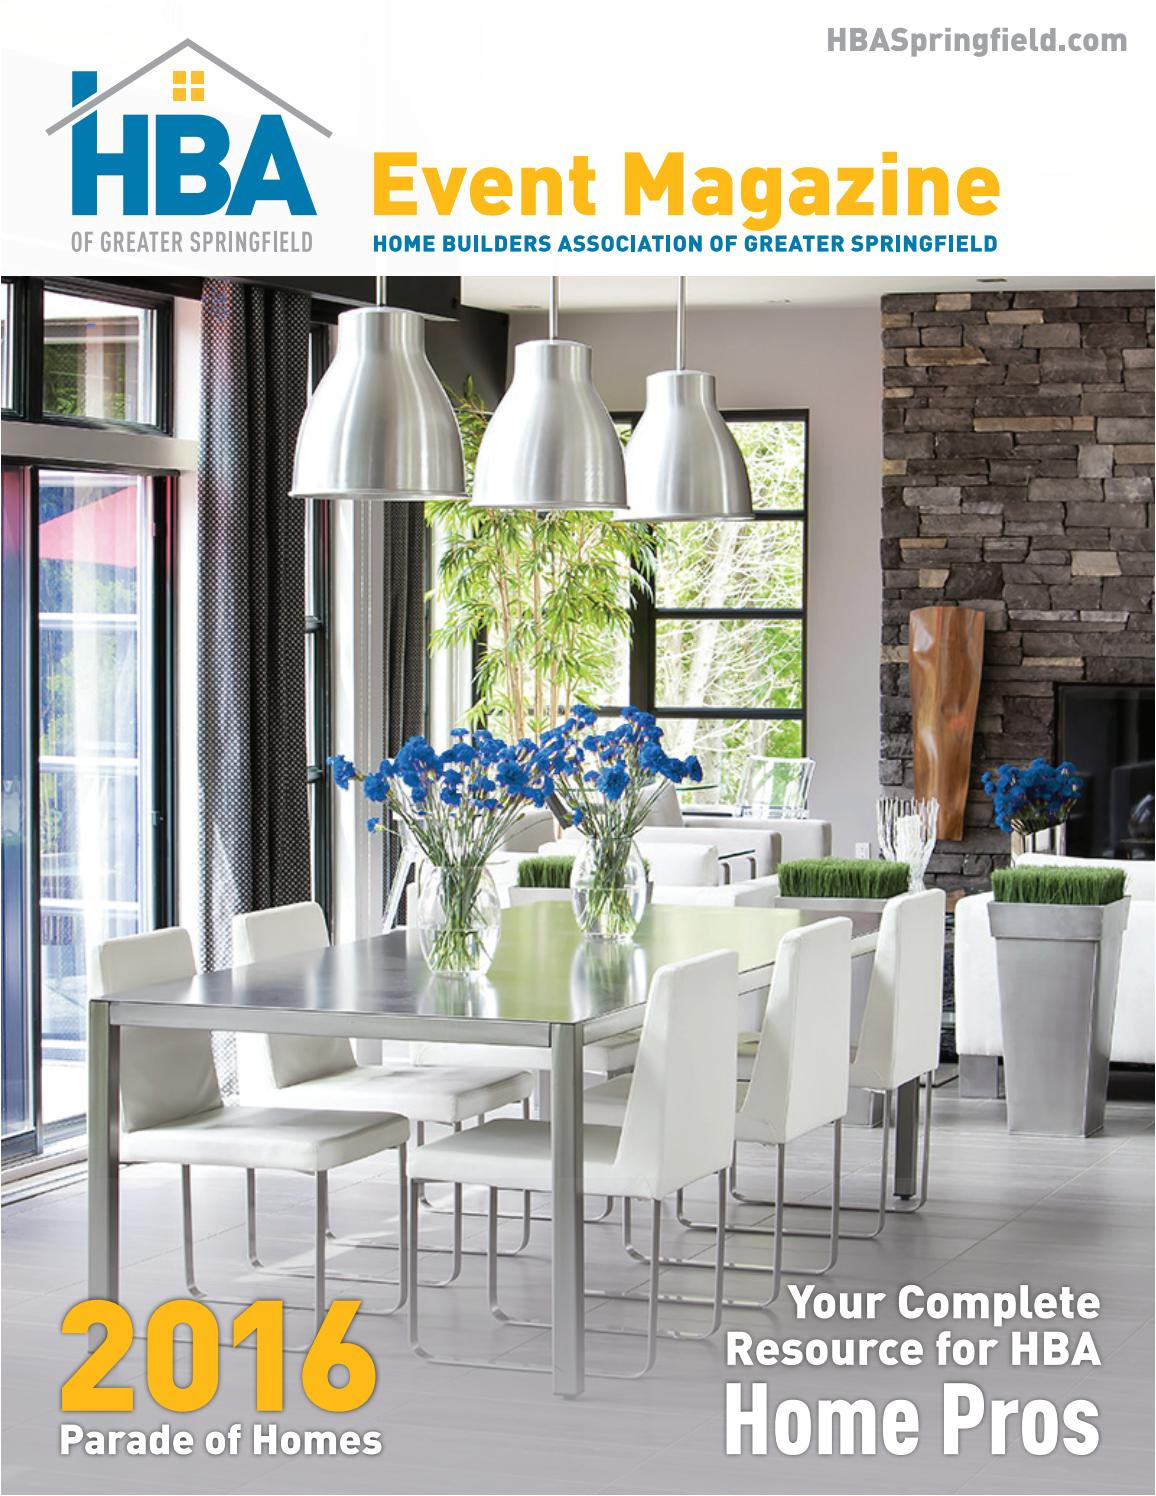 Midwest Rug In Springfield Mo Hba event Magazine 2016 Parade Edition by Home Builders association